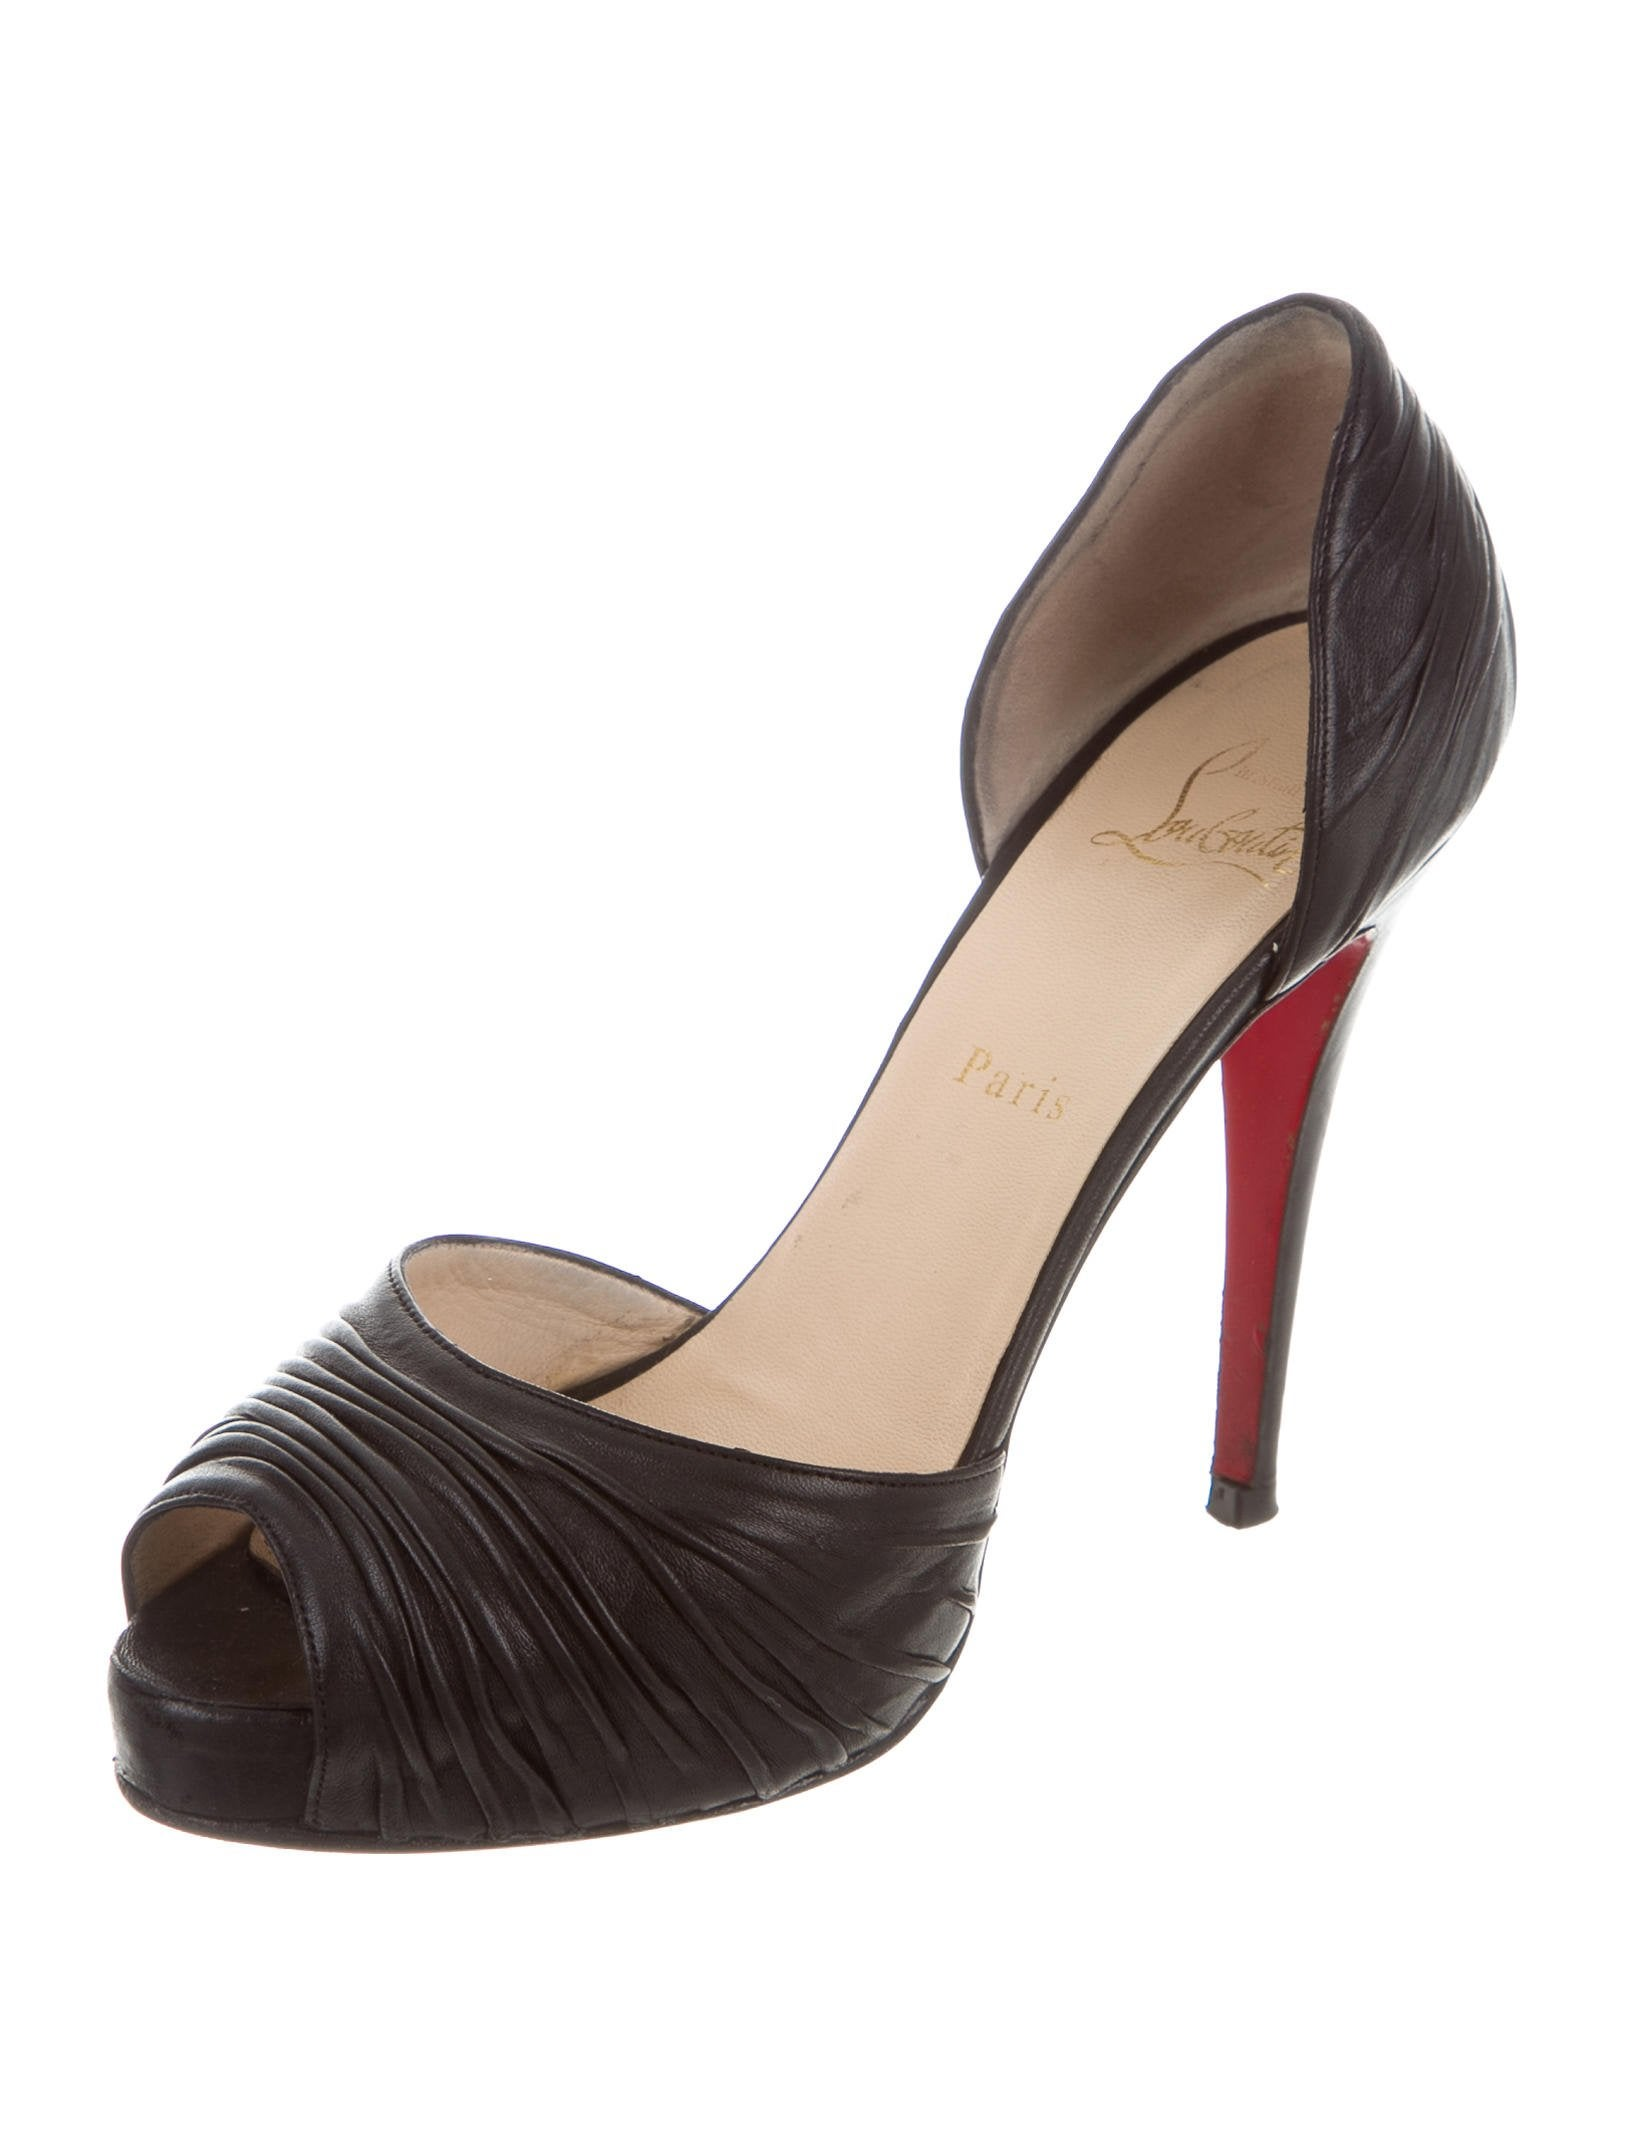 Christian Louboutin Turbella d'Orsay Pumps discount fake for sale top quality collections online wide range of for sale cheap sale extremely AUWieEm